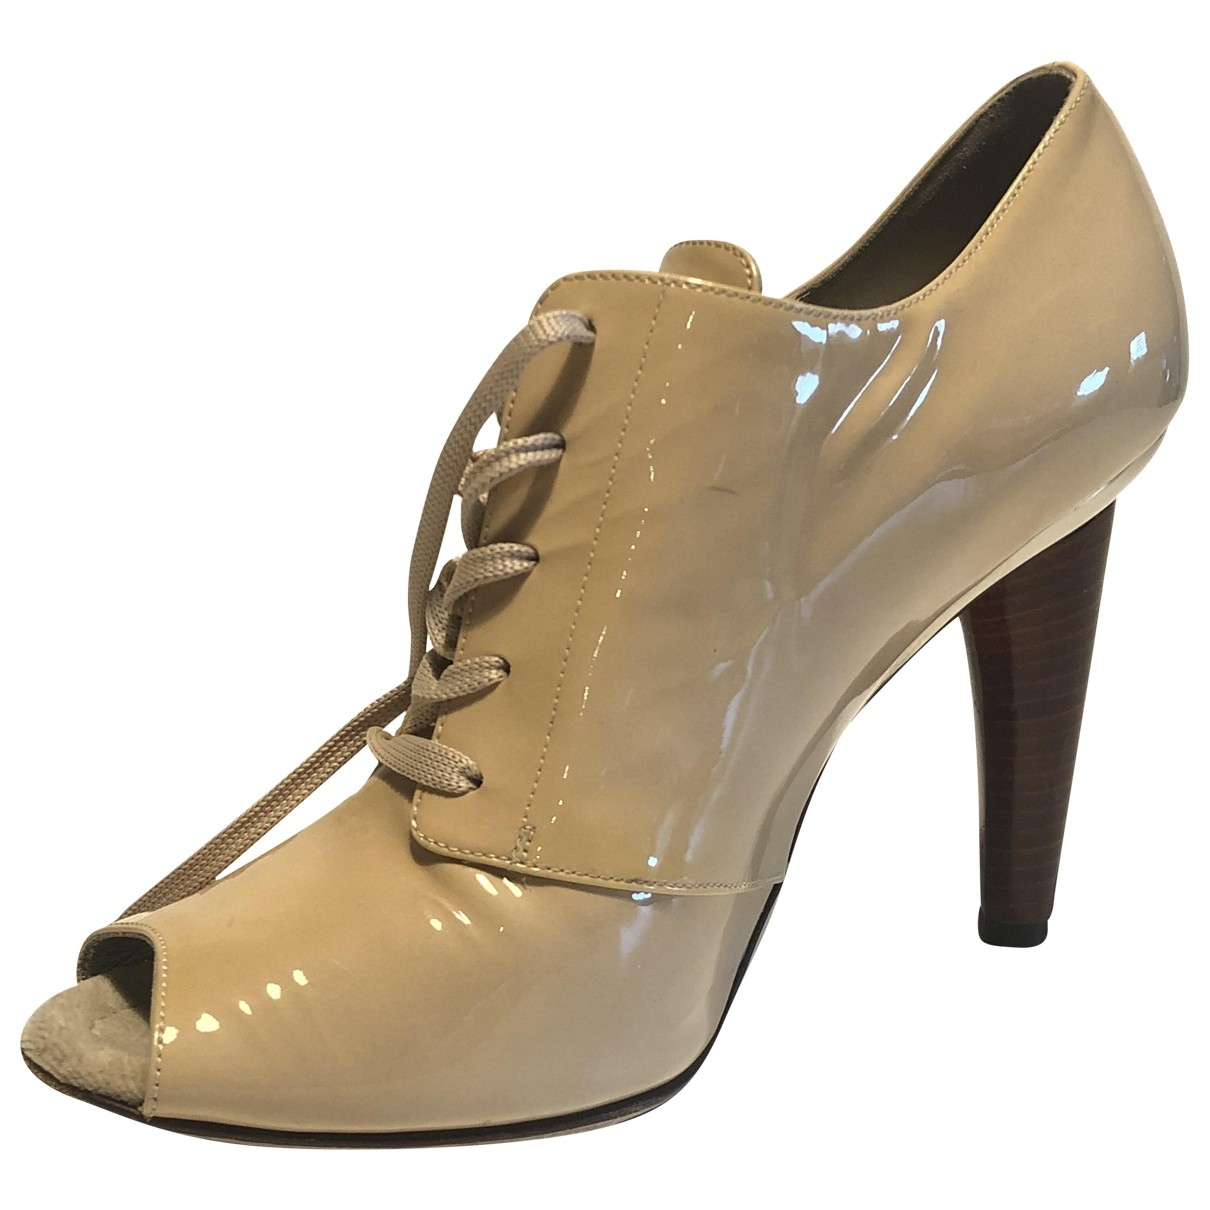 Dolce & Gabbana \N Beige Patent leather Ankle boots for Women 38.5 EU